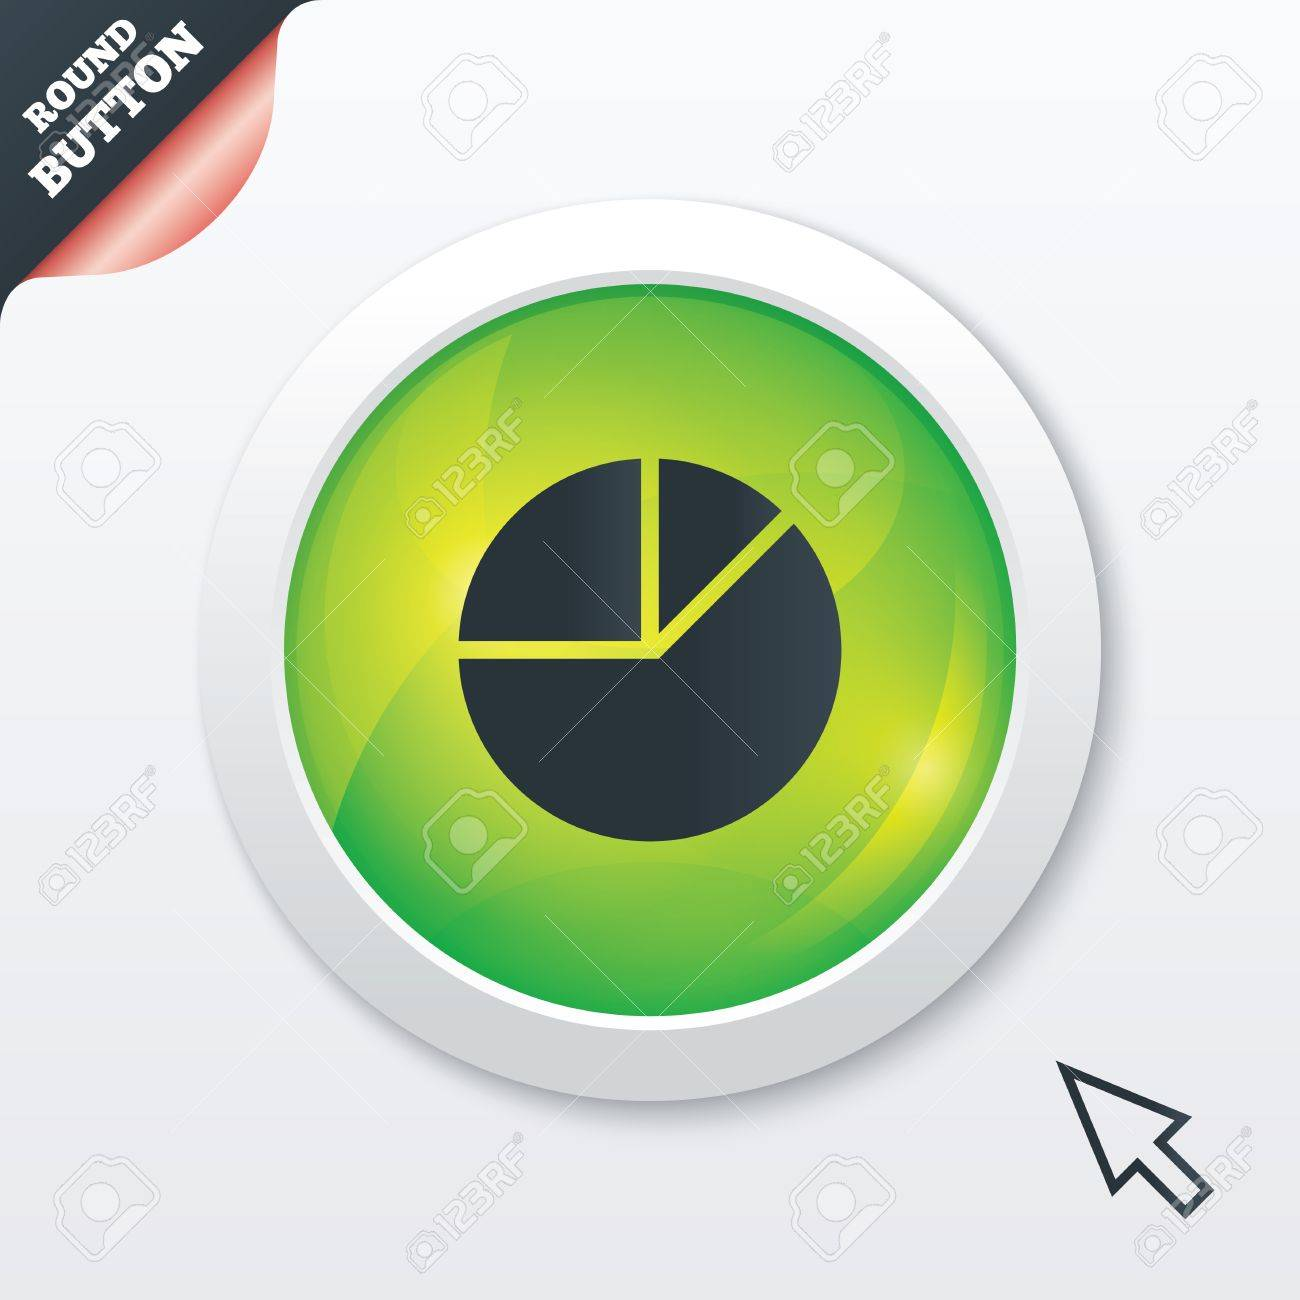 Pie chart graph sign icon  Diagram button  Green shiny button